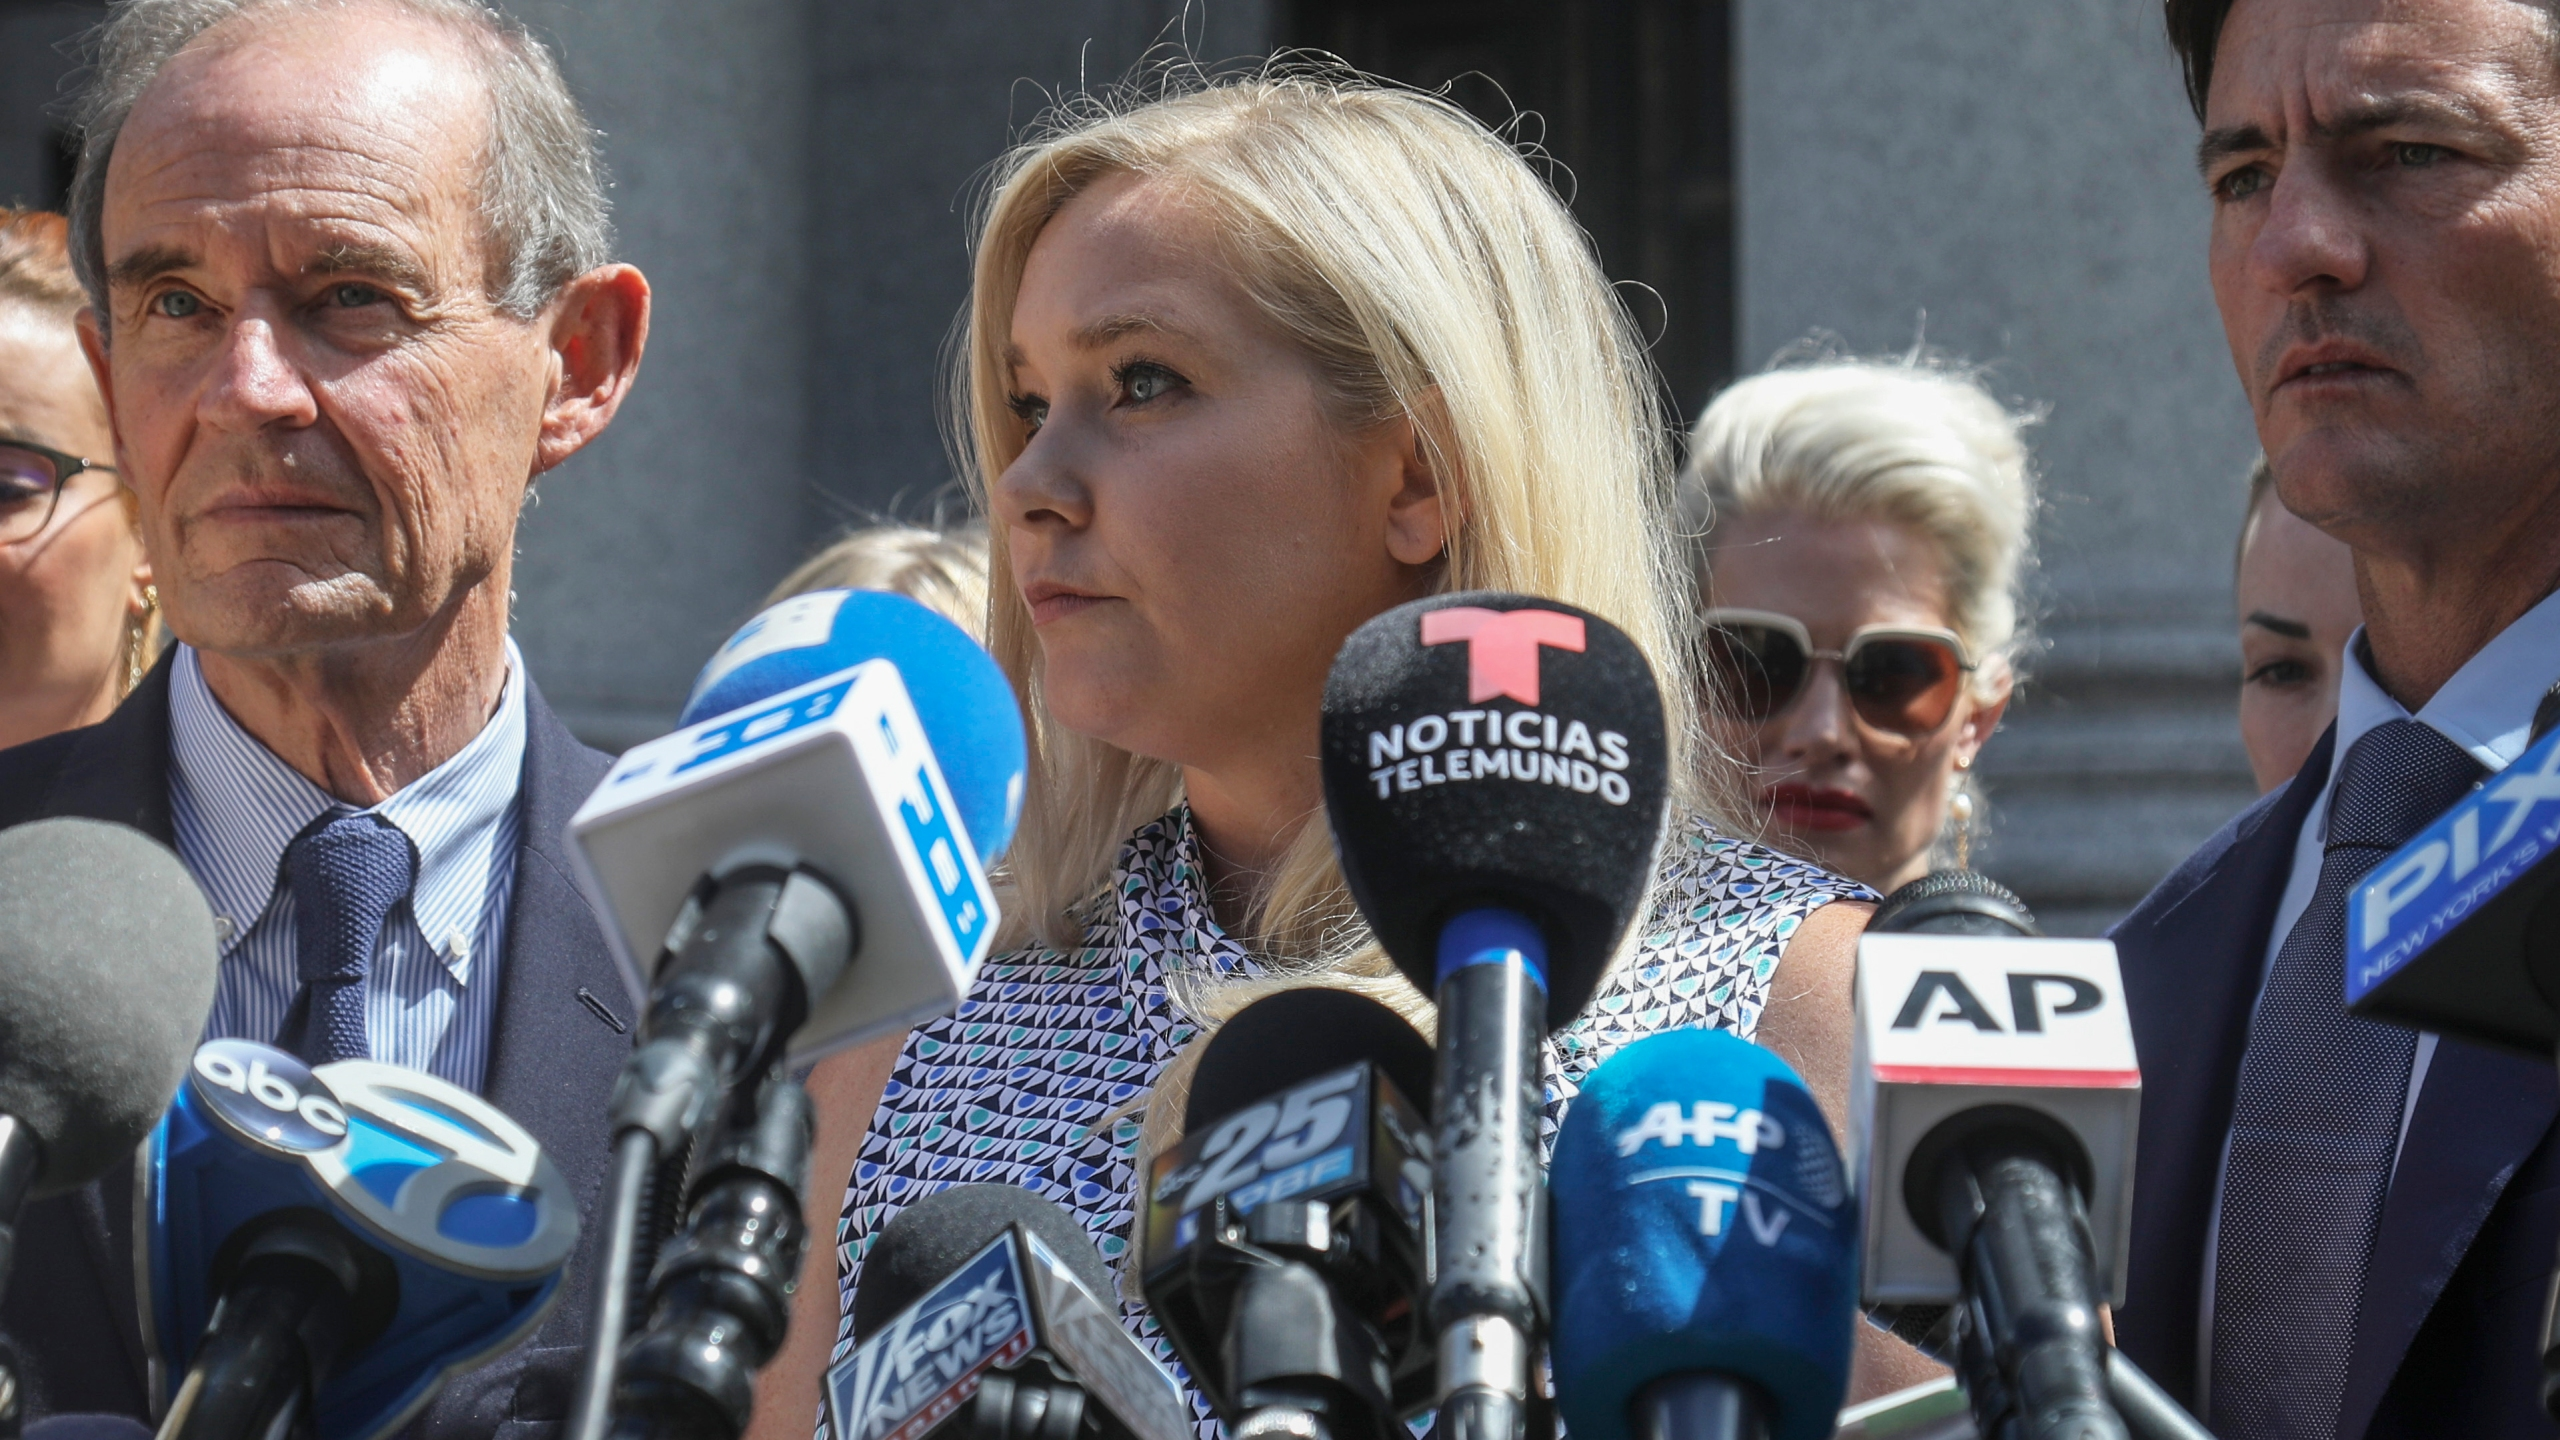 In this Aug. 27, 2019 file photo, Virginia Giuffre, center, who says she was trafficked by sex offender Jeffrey Epstein, holds a news conference outside a Manhattan court in New York. (Bebeto Matthews/AssociatedPress)